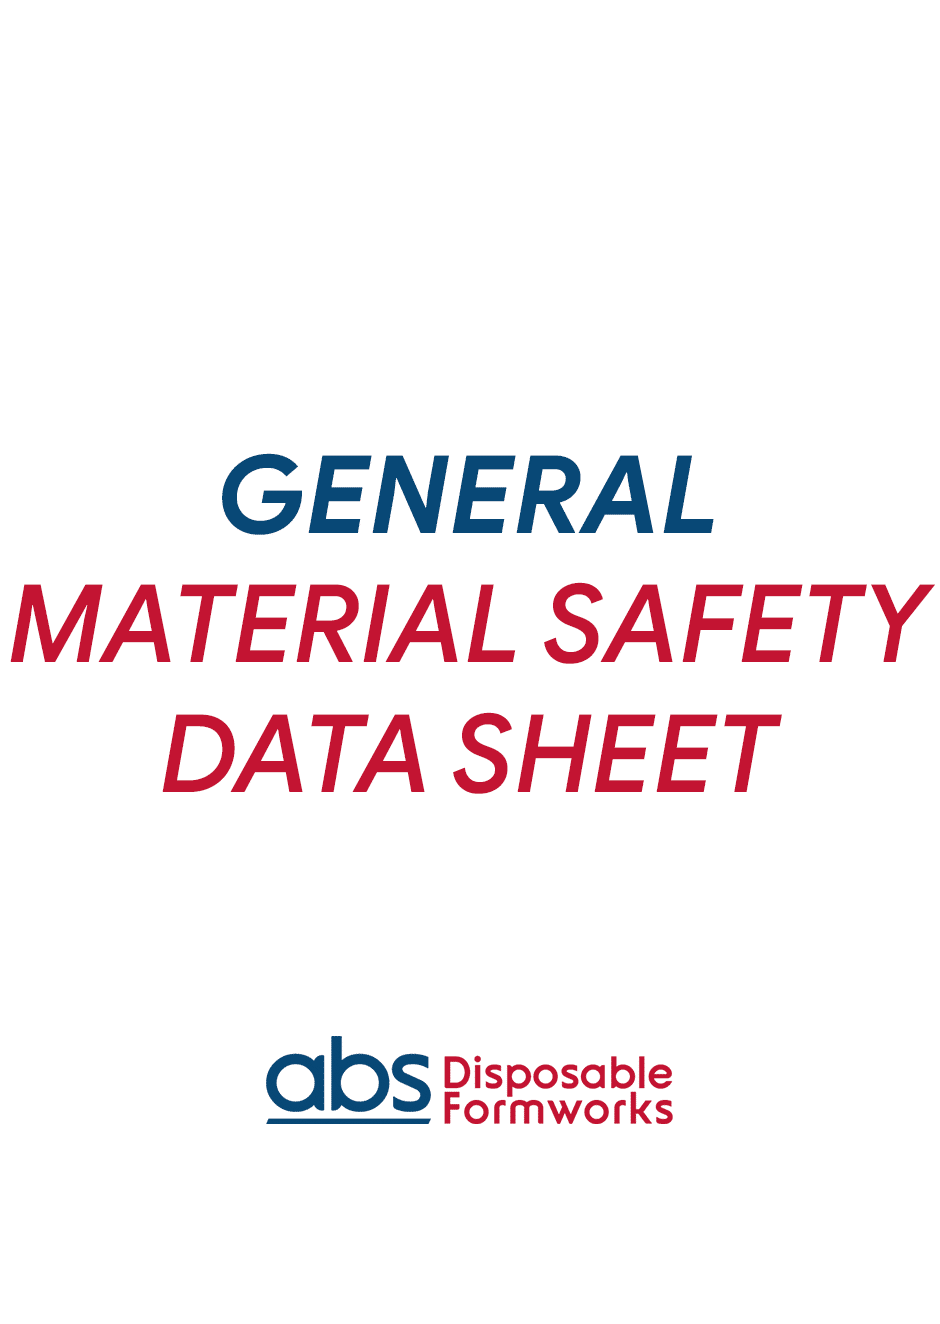 GENERAL_MATERIAL_SAFETY_DATA_SHEET